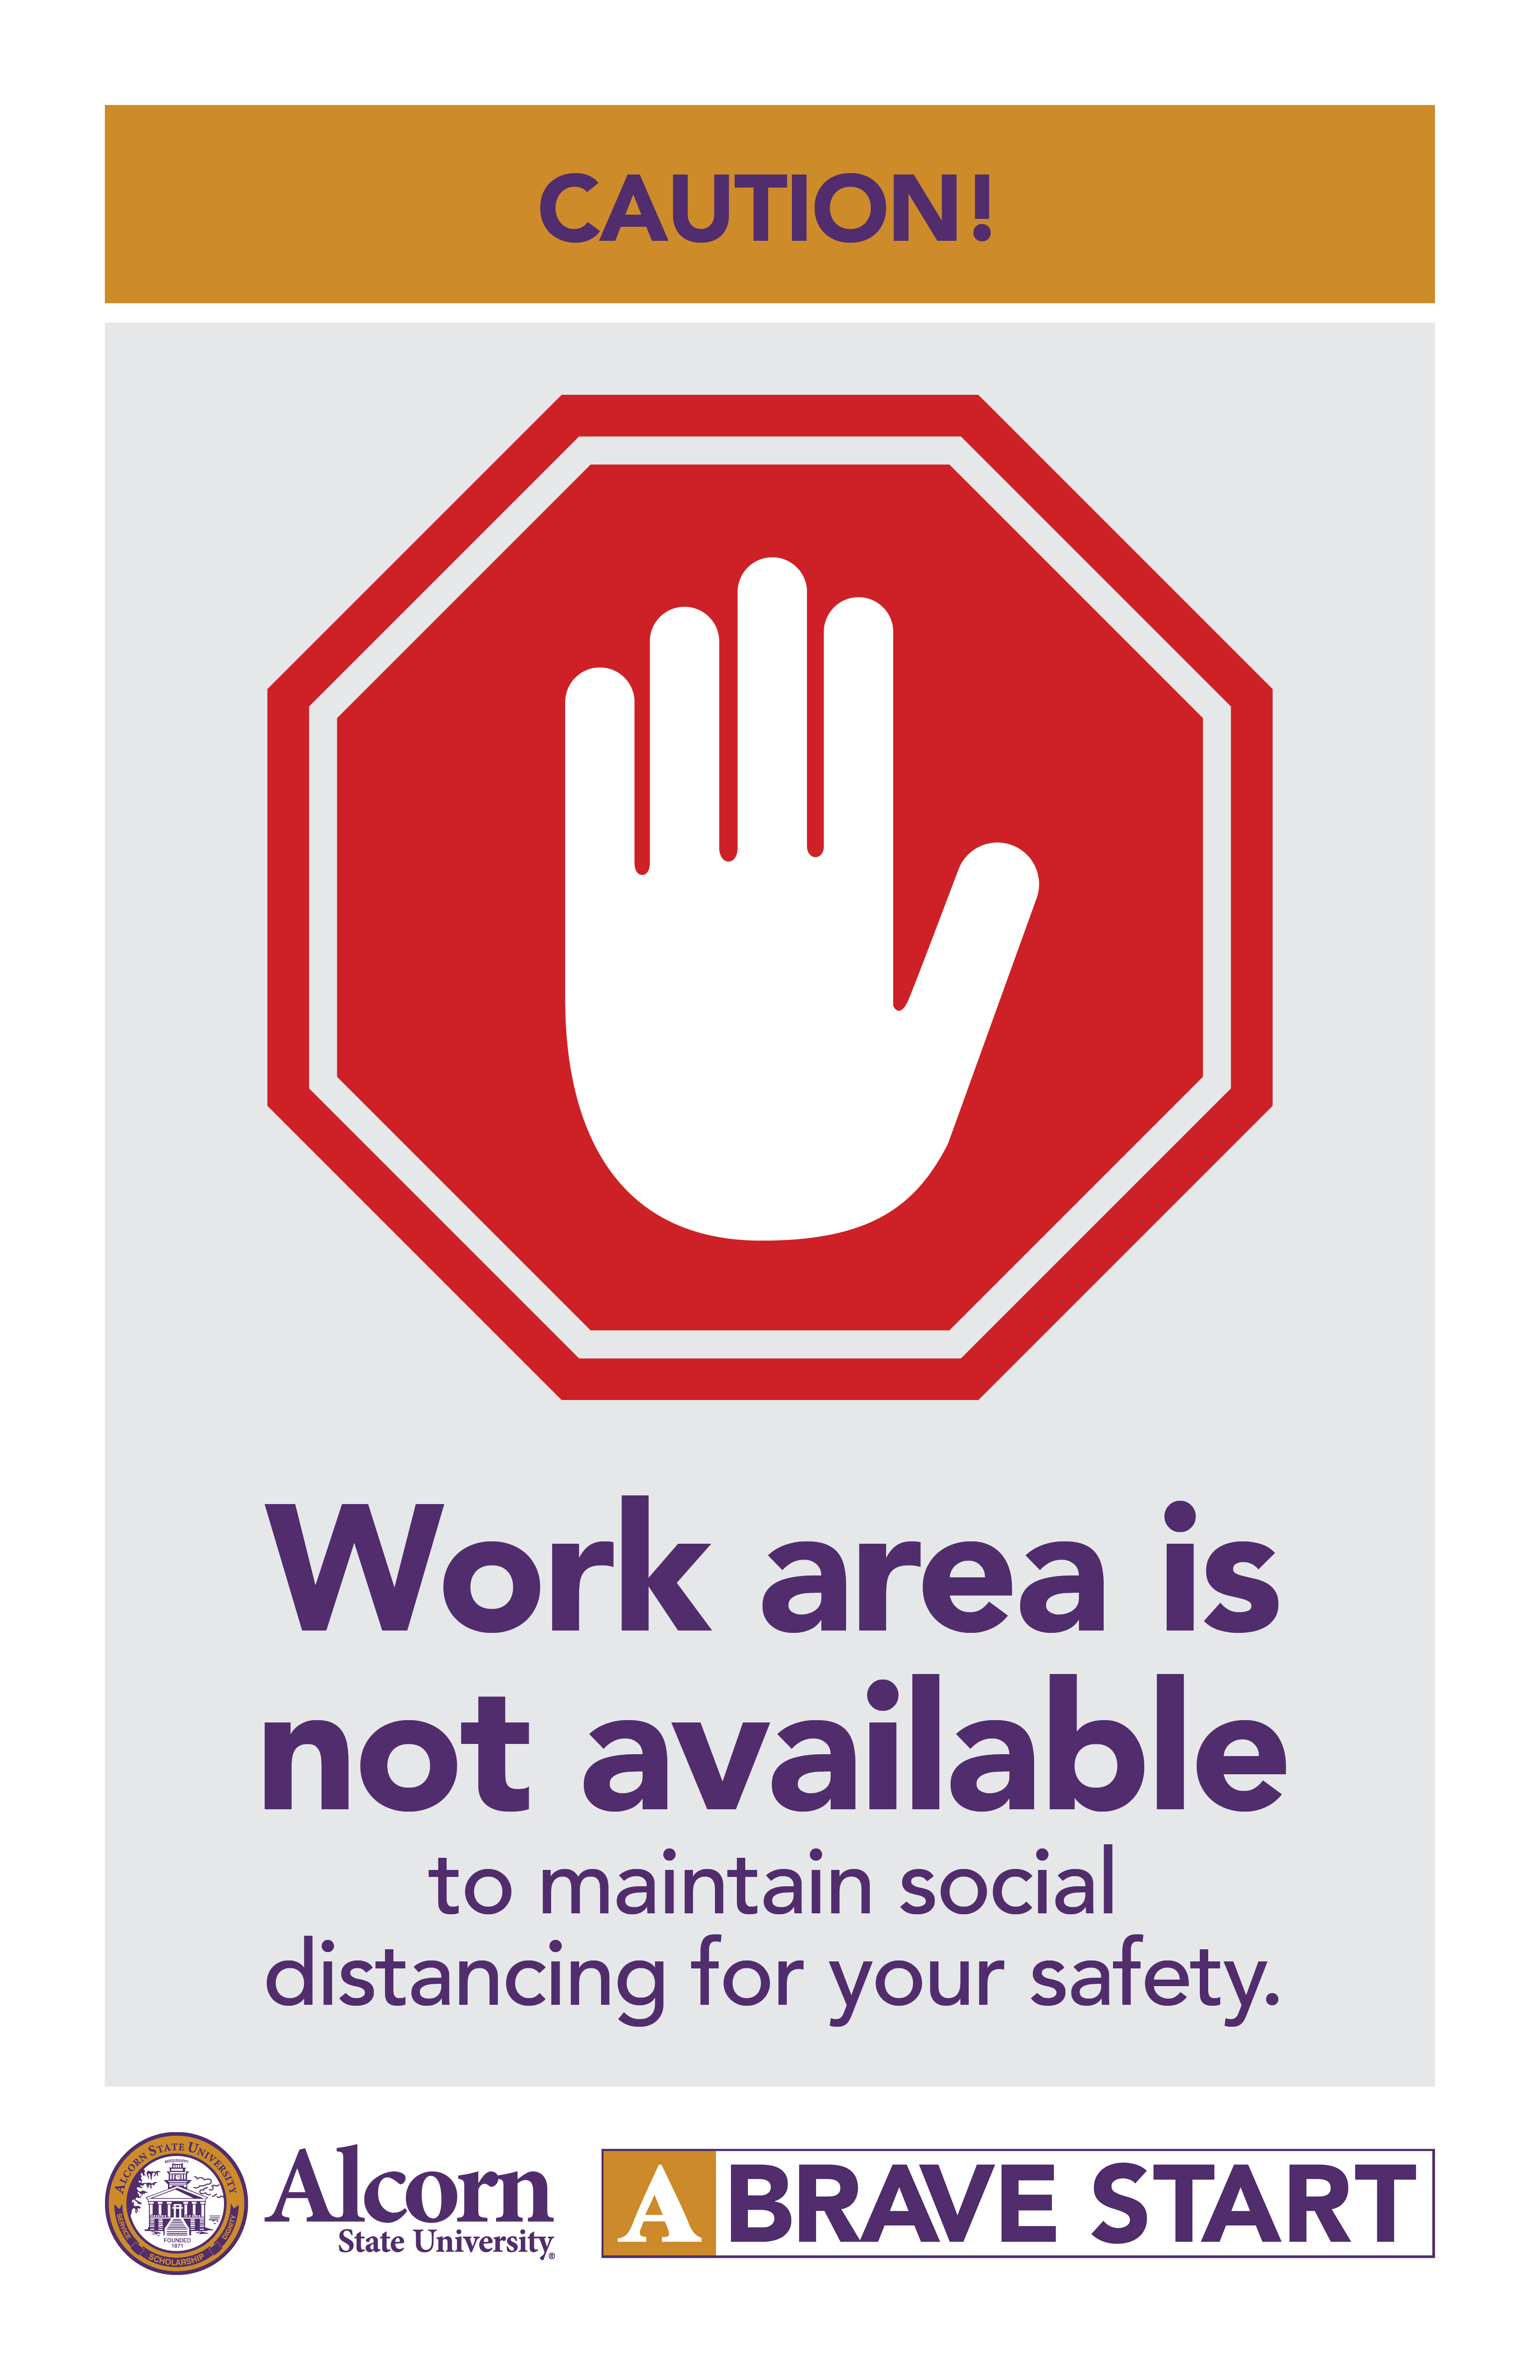 CAUTION! (Picture of stop sign with hand) Work area is not available to maintain social distancing for your safety. (Alcorn logo mark. A Brave Start logo mark.)